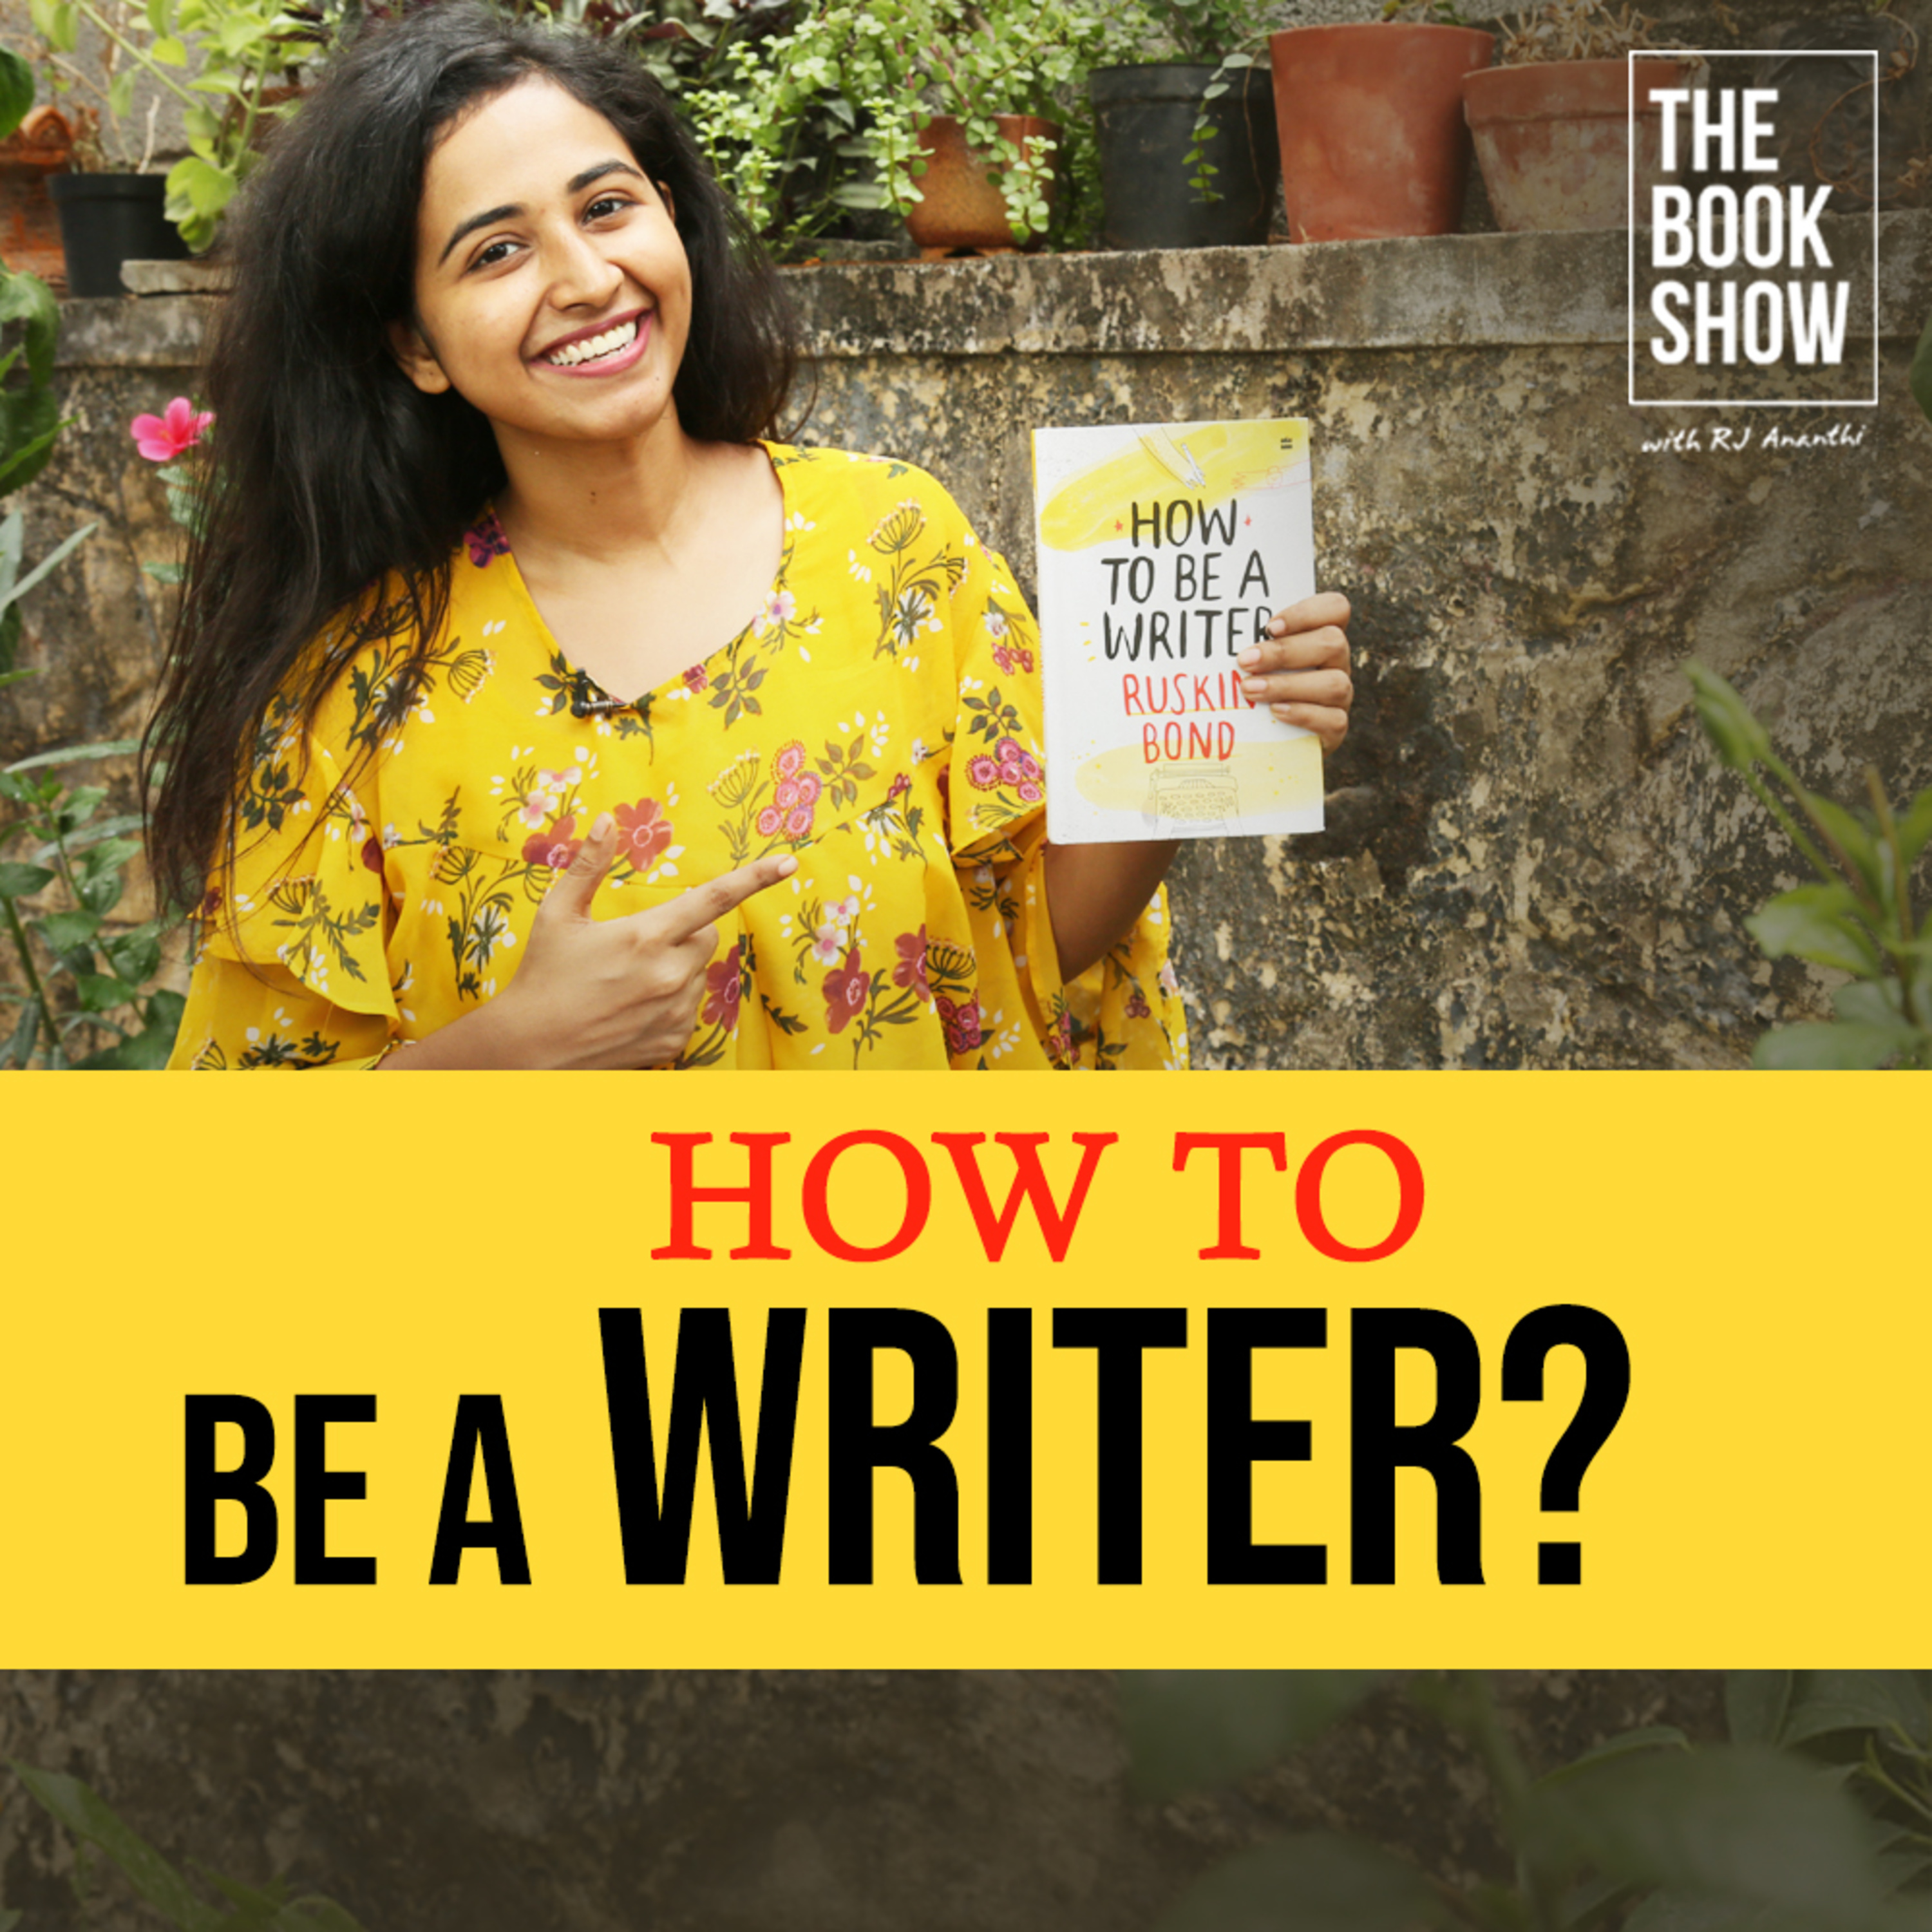 How To Be A Writer? By Ruskin Bond   The Book Show ft. RJ Ananthi